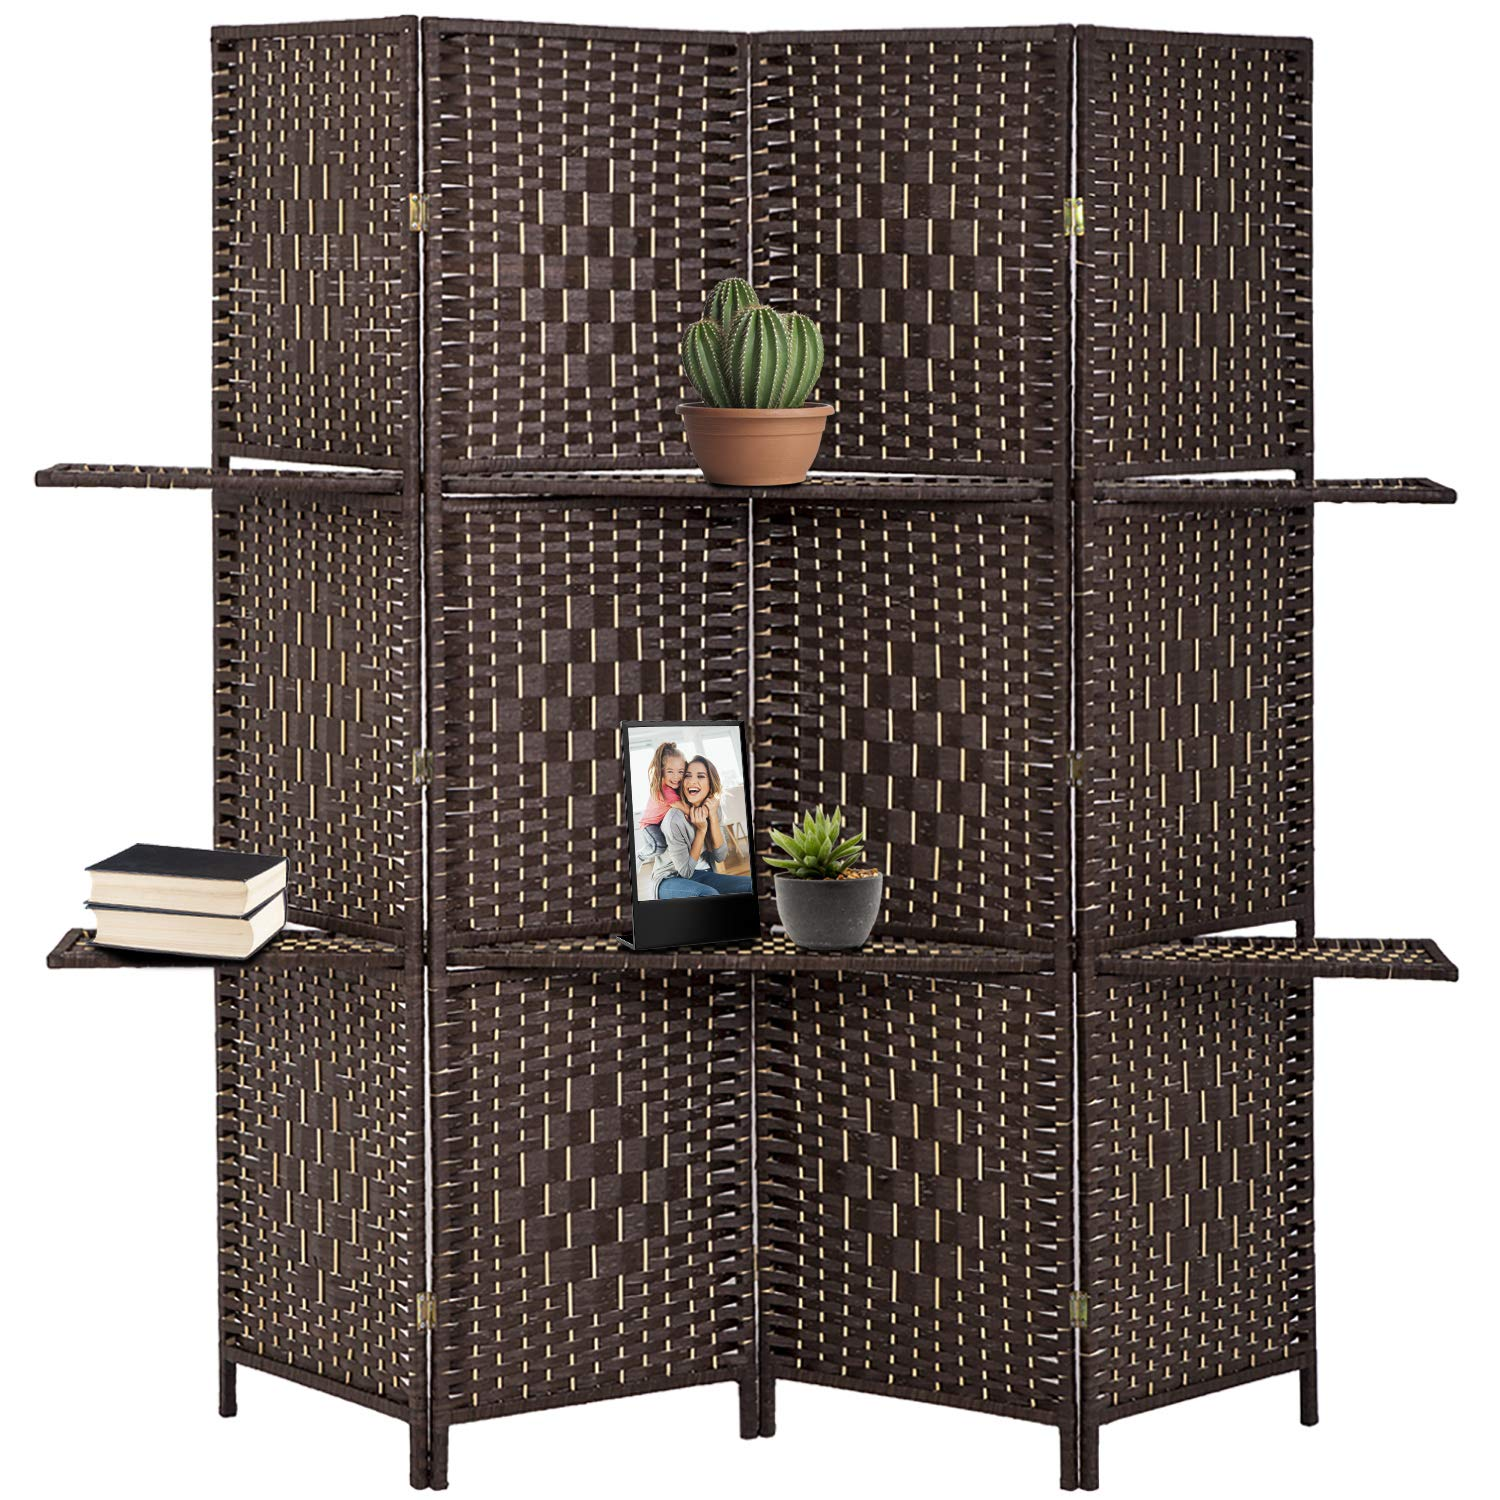 FDW Wooden Folding Portable Partition 4 Panel Screen Room Divider, Brown by FDW